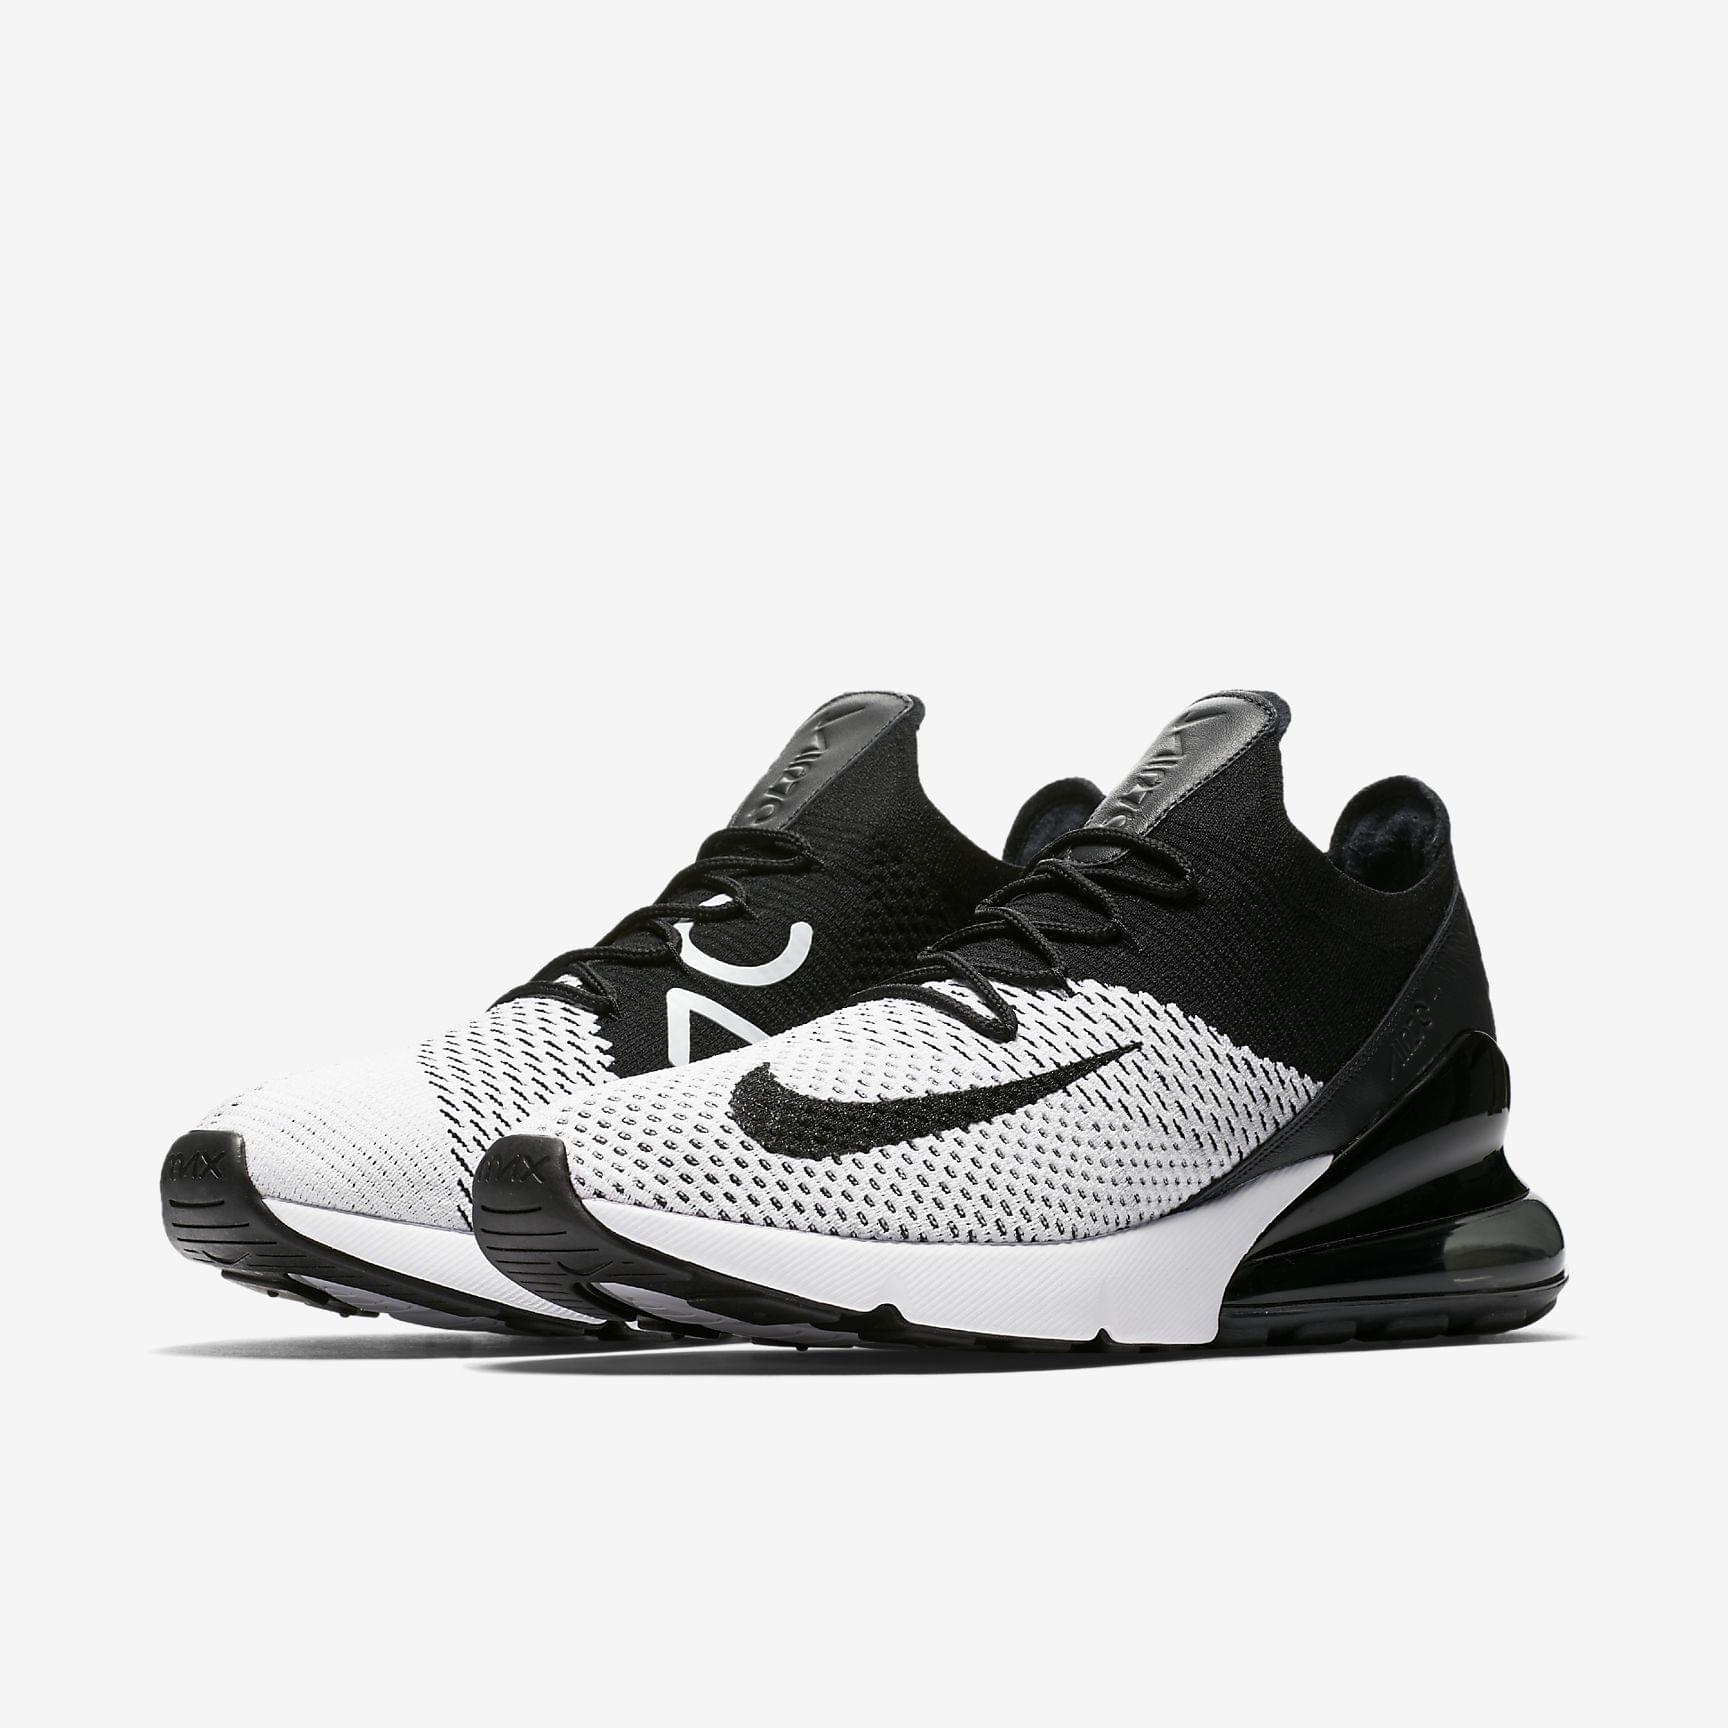 Playersroom | Air Max 270 Flyknit | Shoes | Shoes | Casual